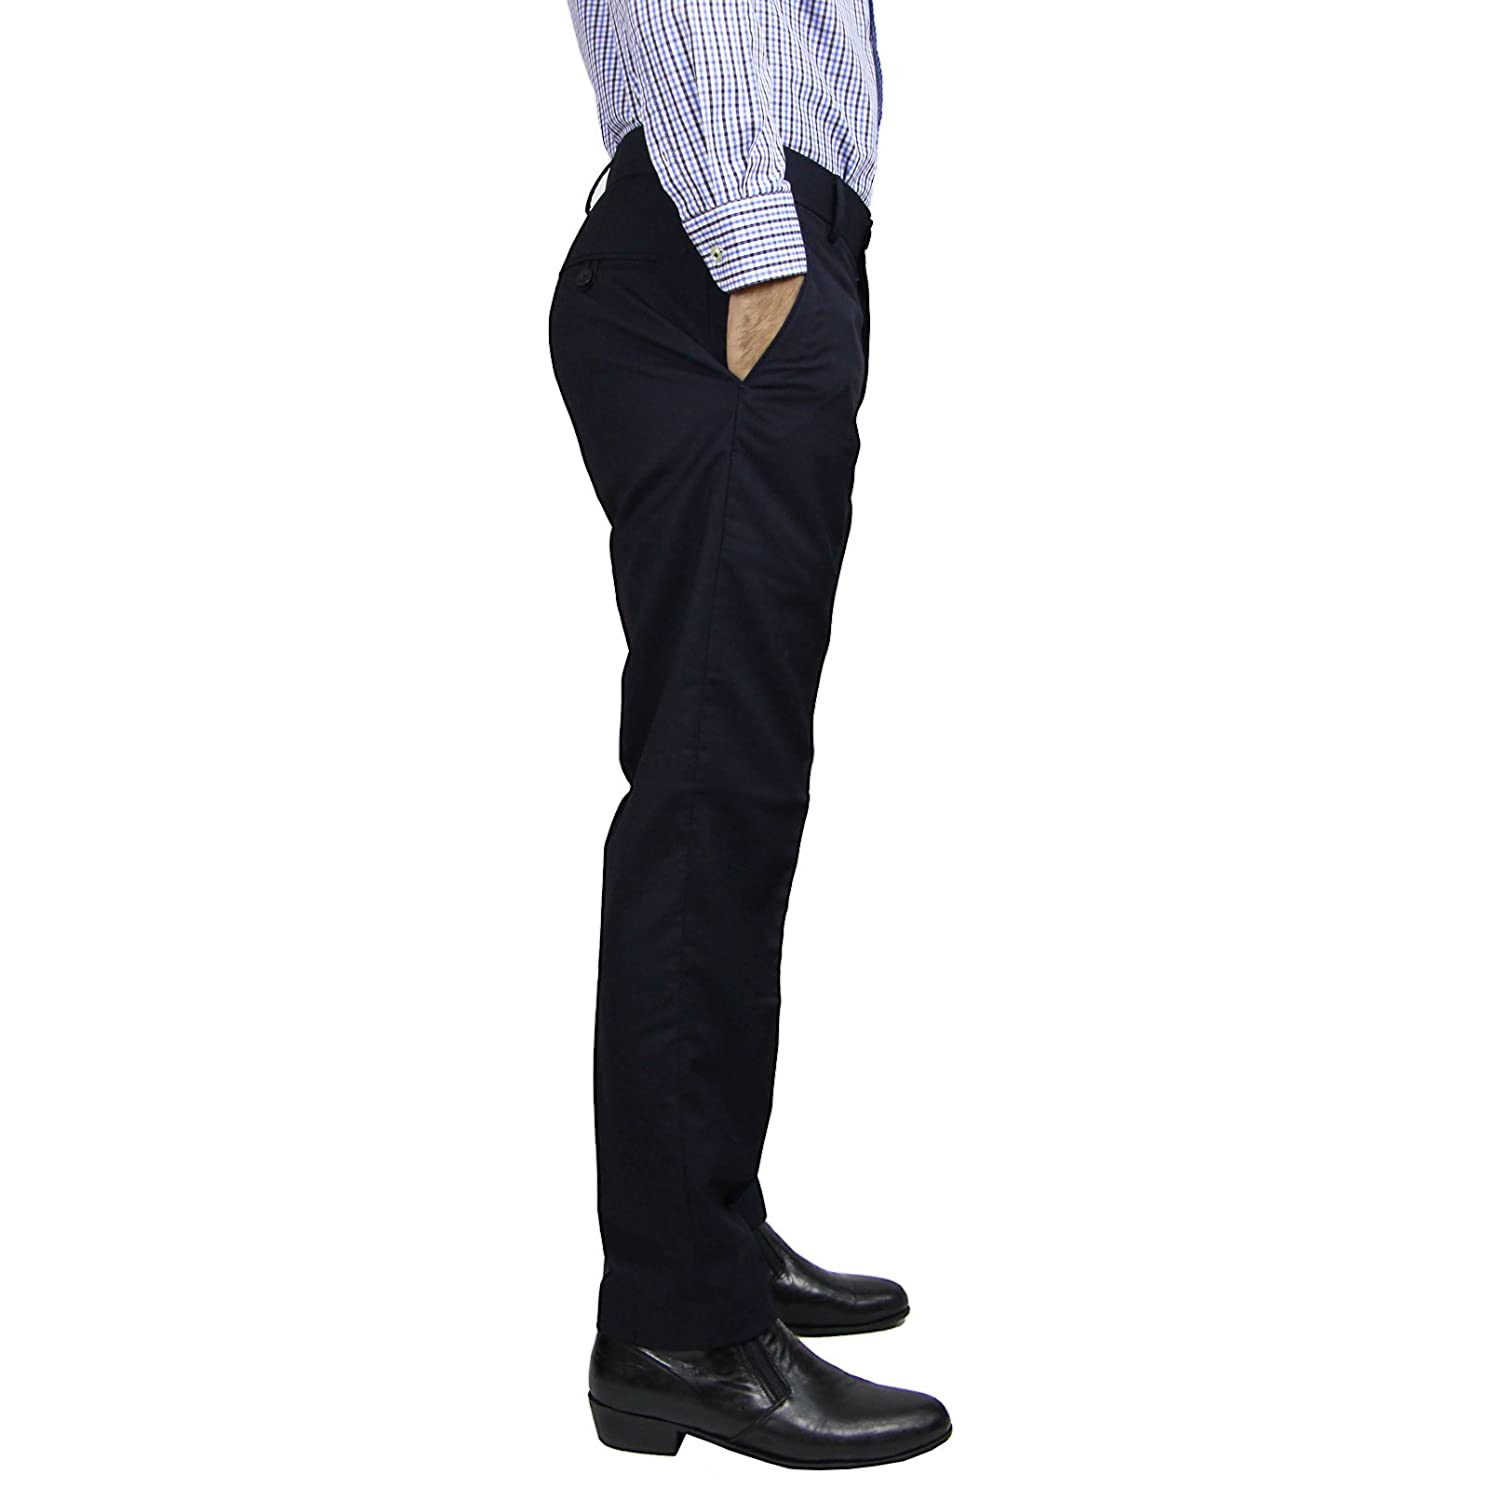 59850dba88 Identity Mens Stylish Slim Fit Straight Cut Corporate Wear Office Dress  Pants Slack Trousers - Navy Blue at Amazon Men s Clothing store